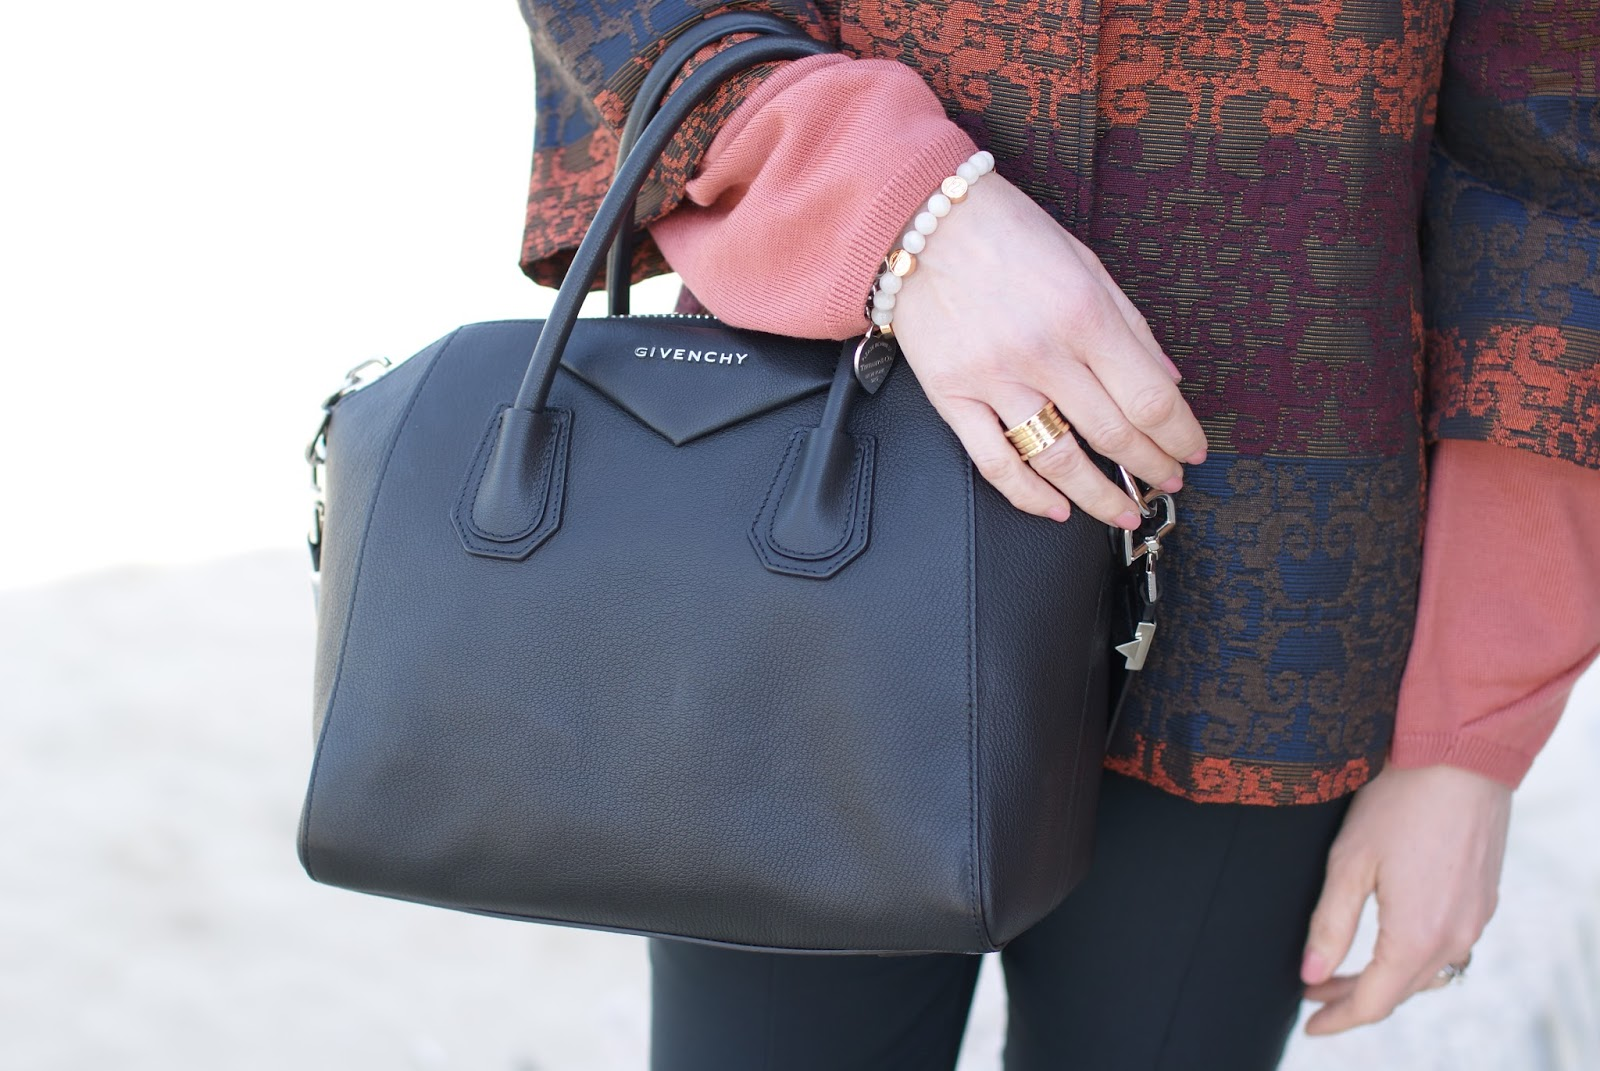 Givenchy Antigona small on Fashion and Cookies fashion blog, fashion blogger style